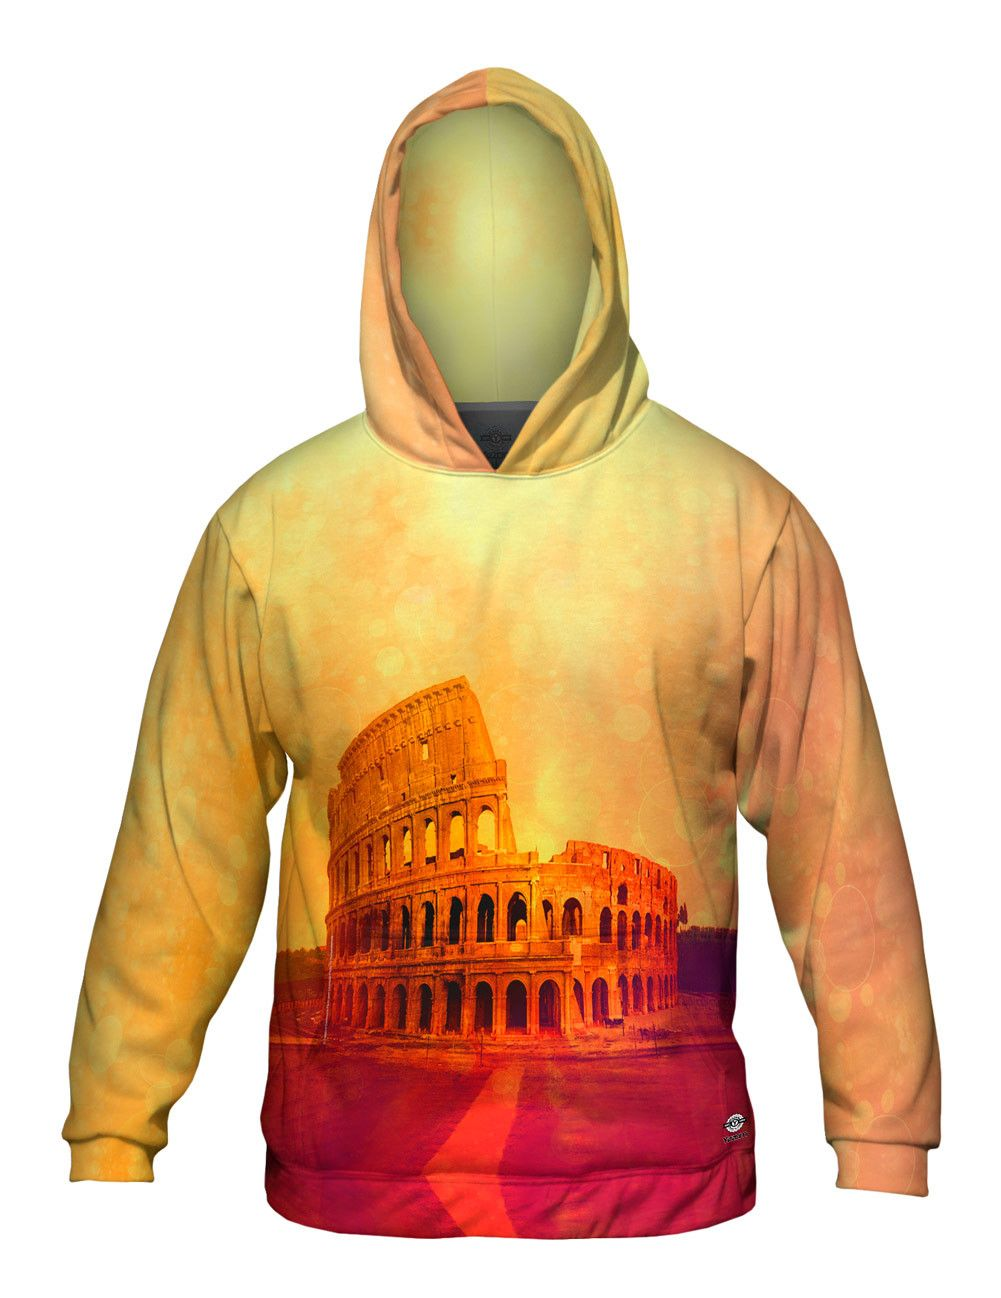 Image of Fashion Golden Colosseum Rome Italy - X-Large